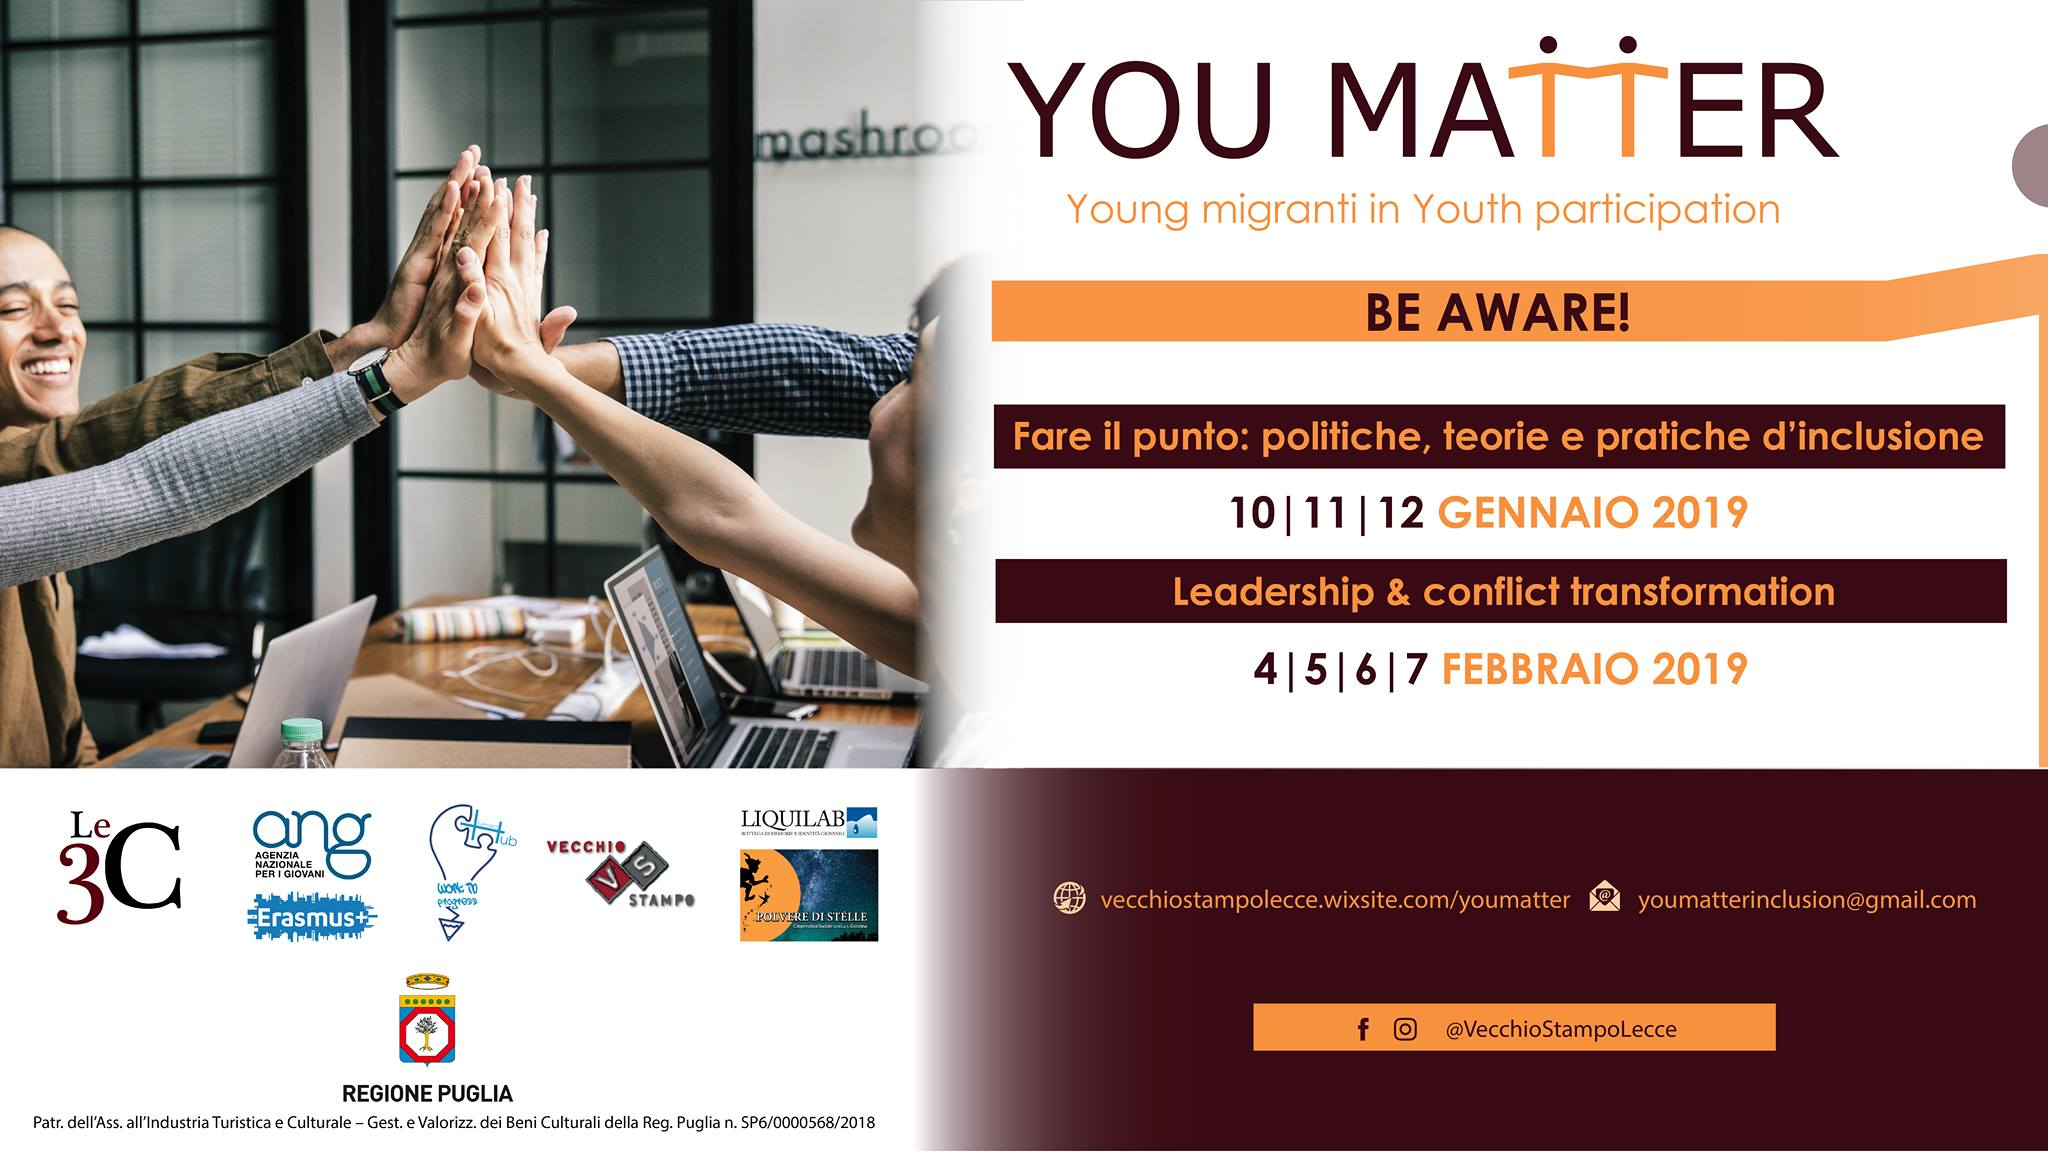 You Matter - Young migrants in Youth participation